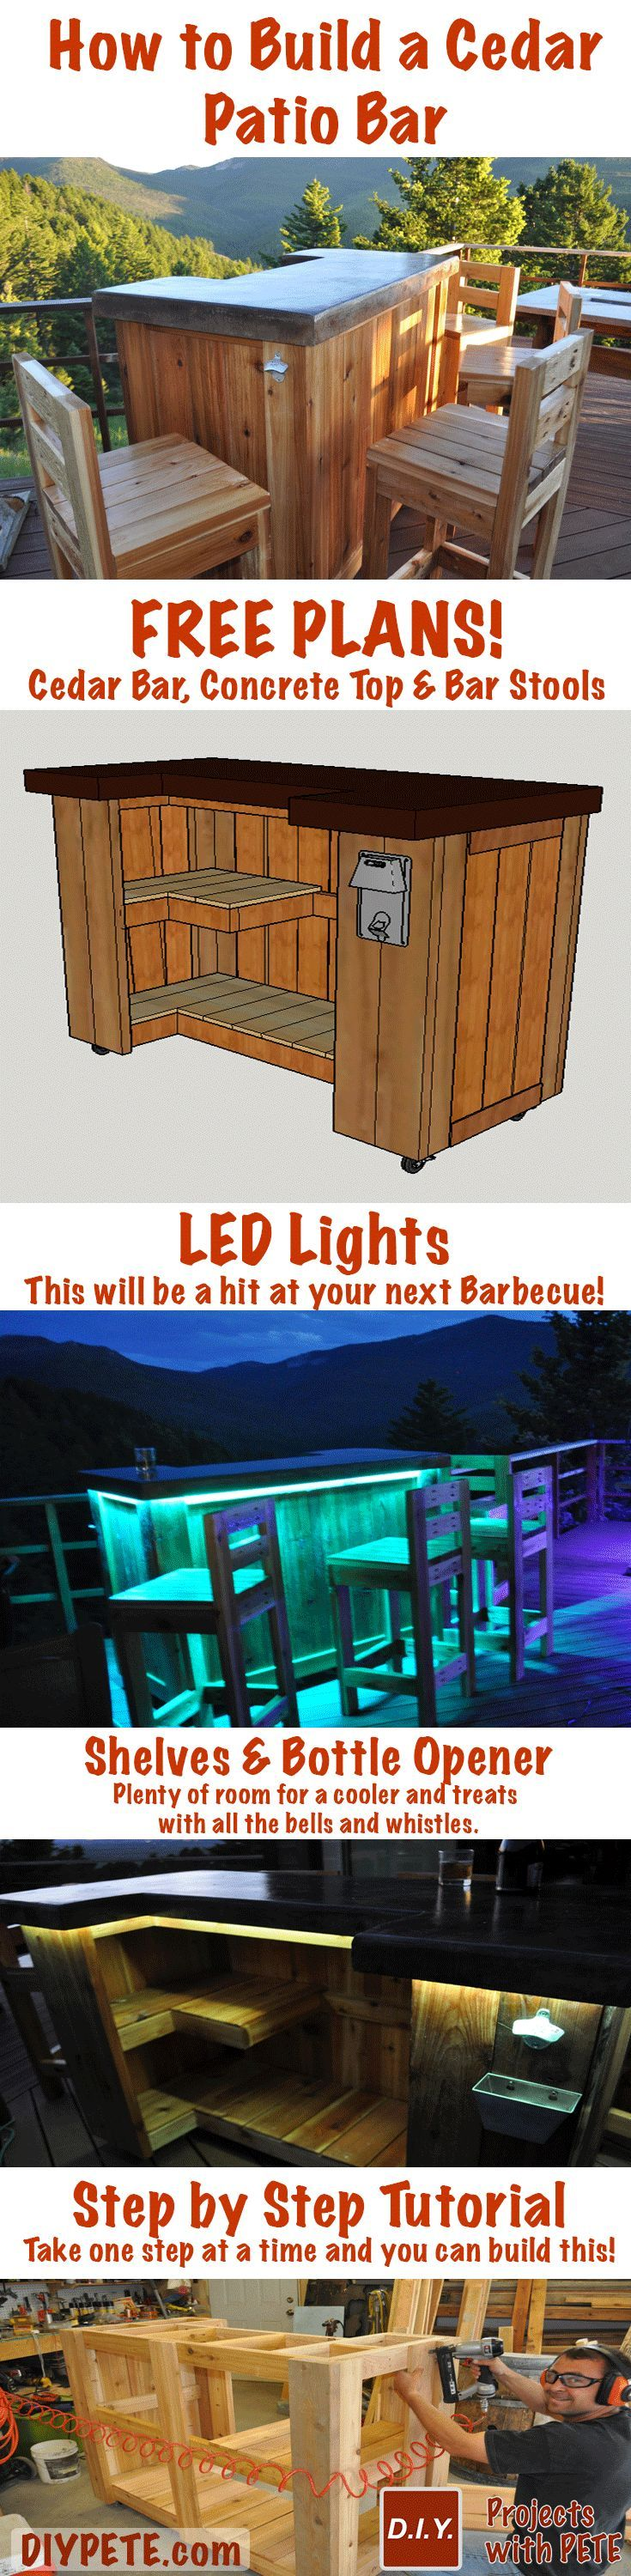 Learn how to build a Patio Bar! Free Plans, Video Tutorial, and Inspiration :) This will be a hit at your next barbecue! Cheers - DIY PETE #woodworking